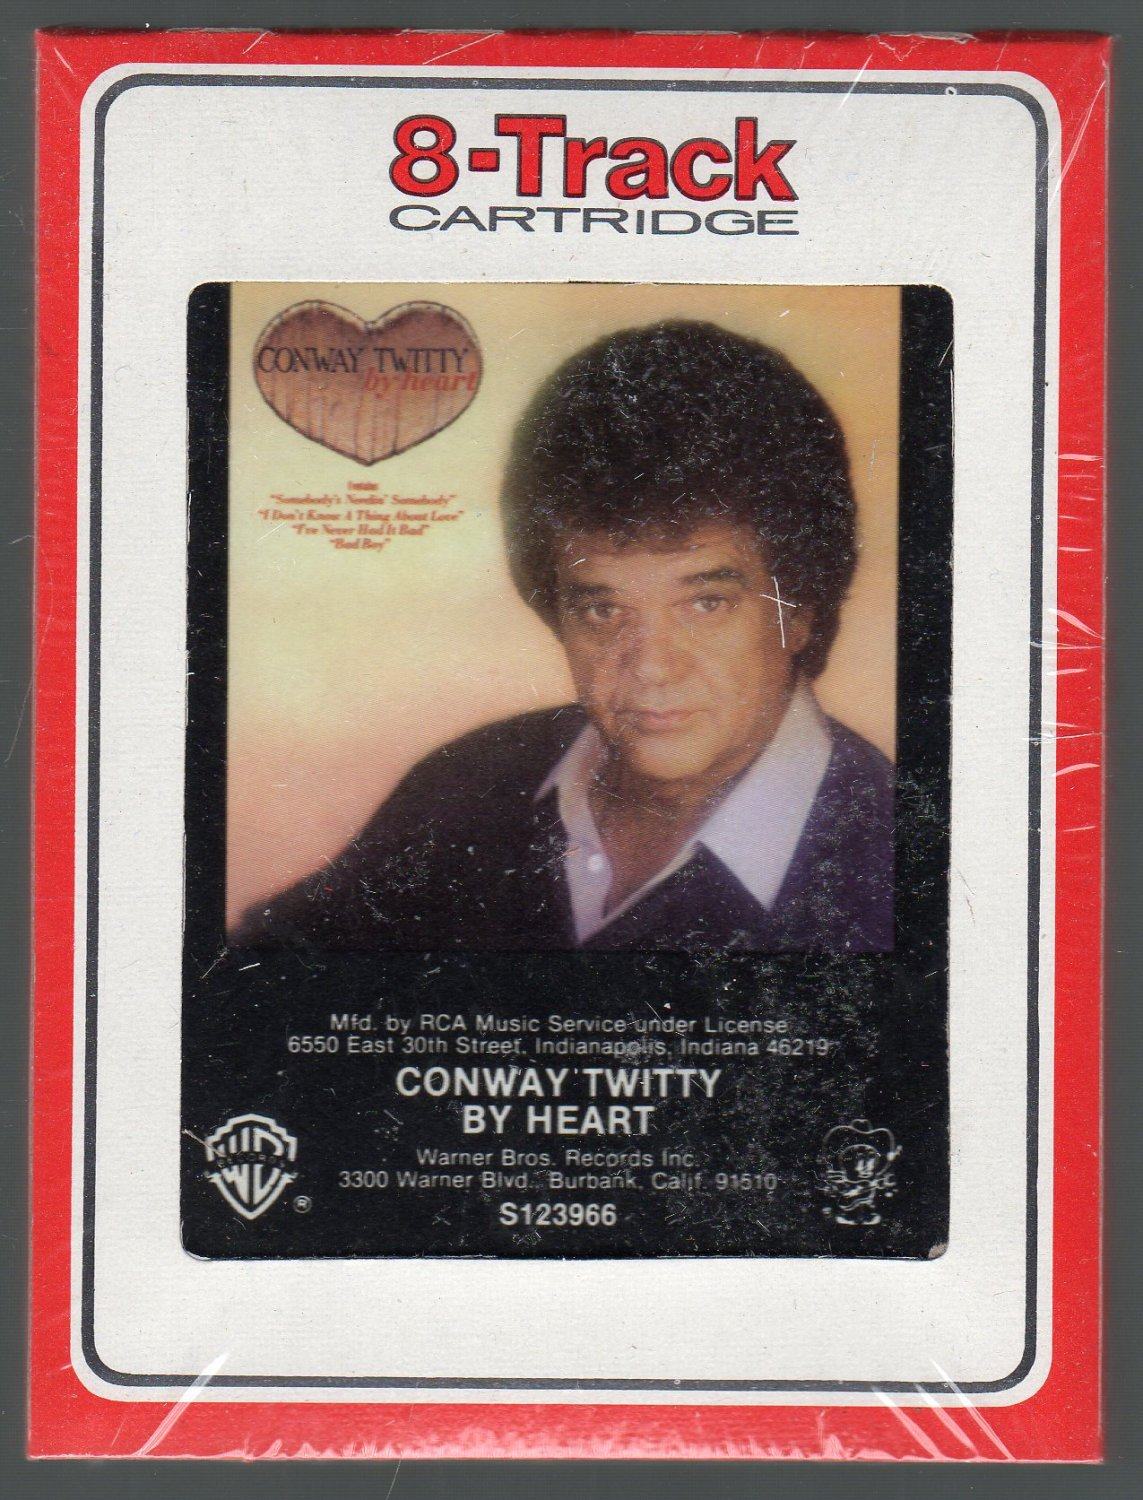 Conway Twitty - By Heart 1984 RCA Sealed 8-track tape